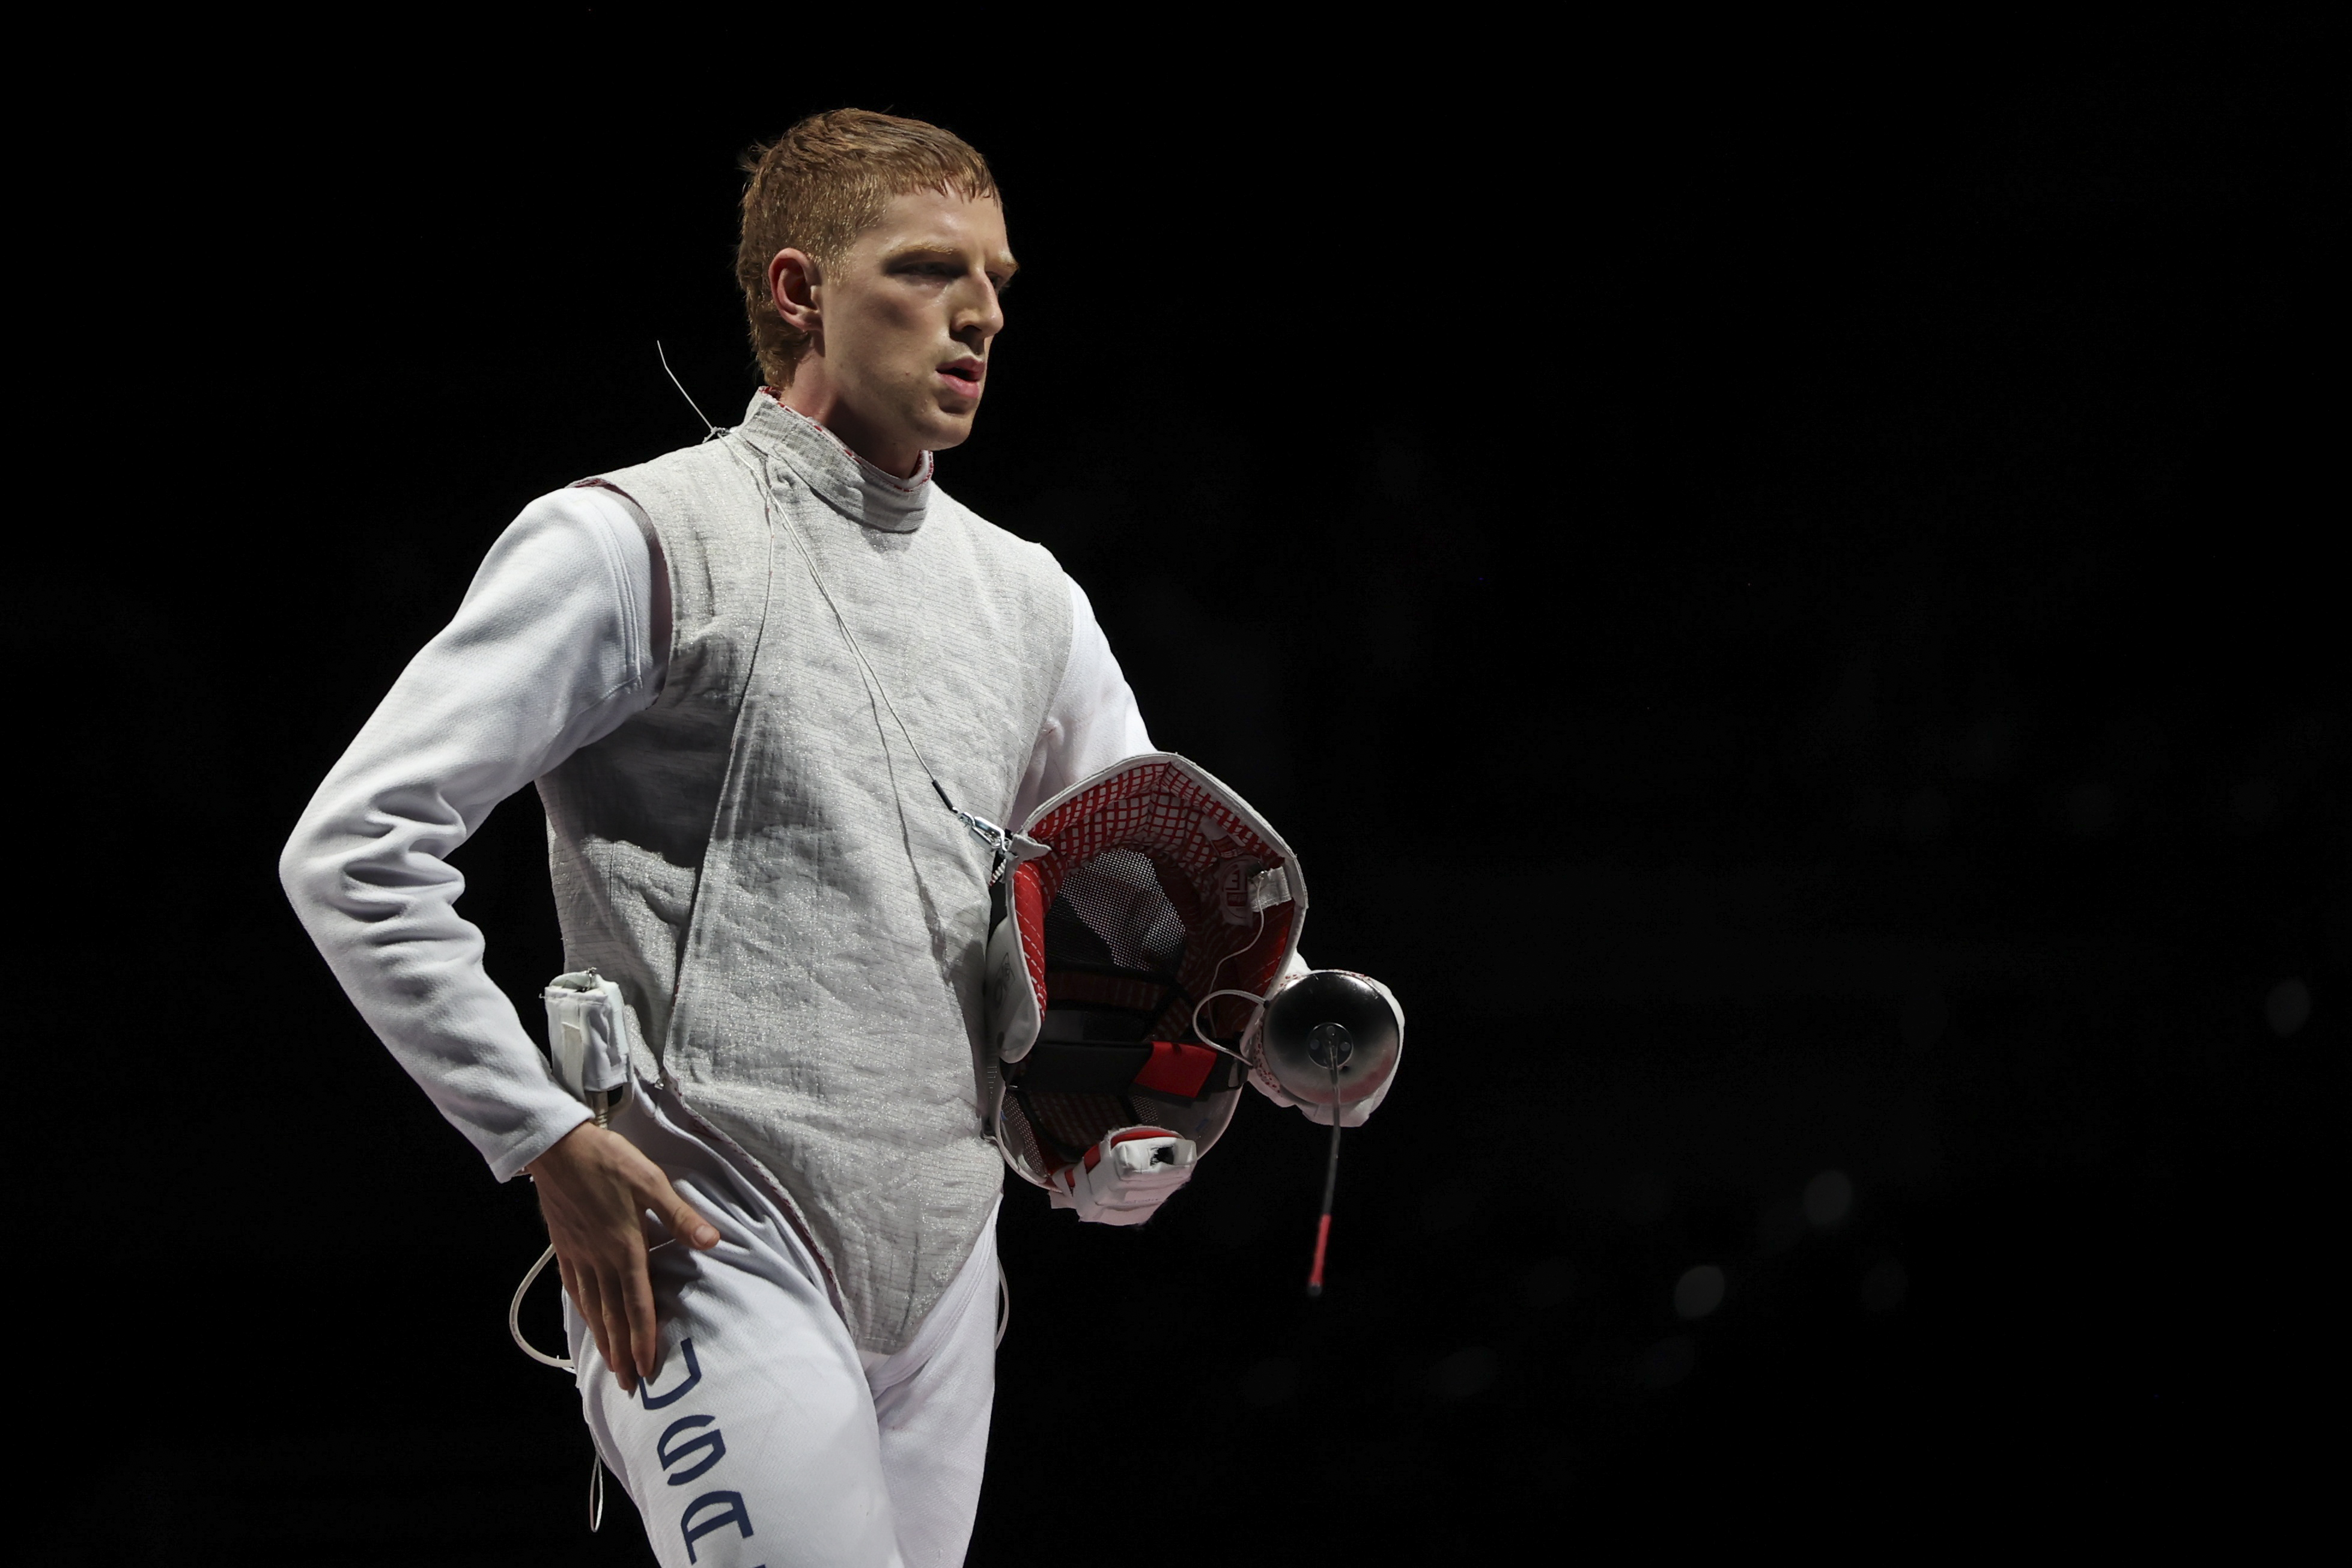 Tokyo 2020 Olympics - Fencing - Men's Team Foil - Bronze medal match - Makuhari Messe Hall B - Chiba, Japan - August 1, 2021. Race Imboden of the United States reacts REUTERS/Molly Darlington